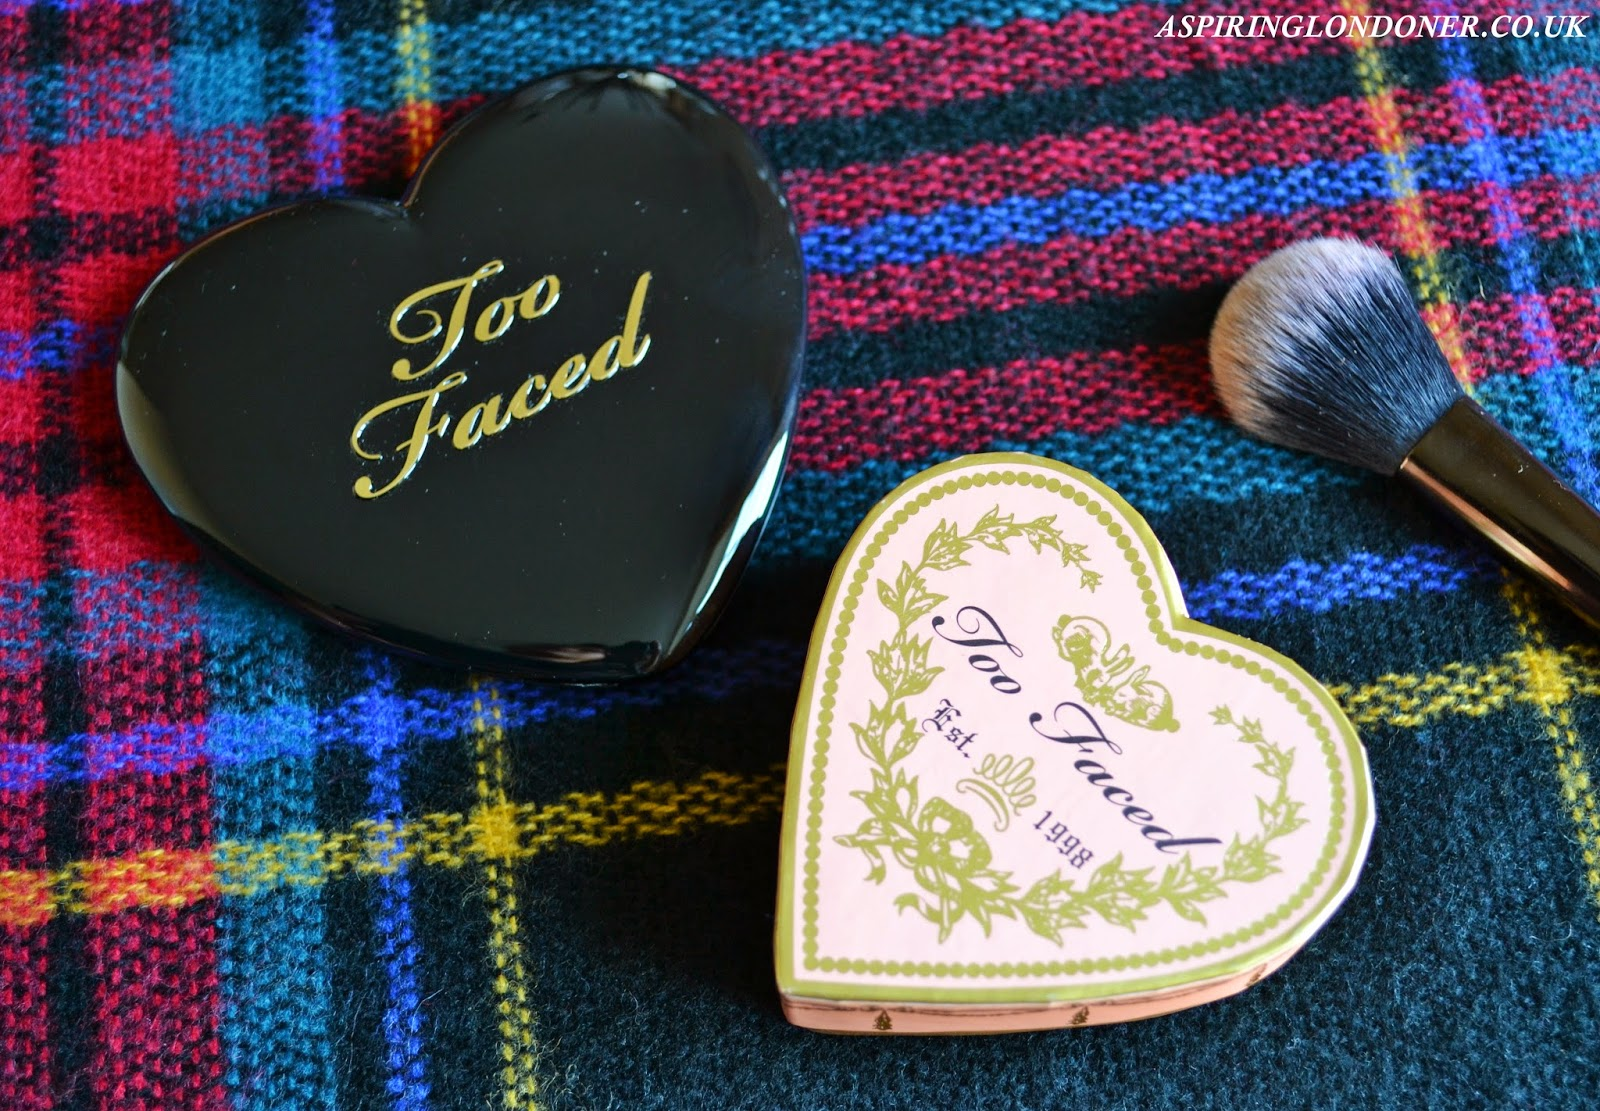 Too Faced Cosmetics Blushing Bronzer and Sweethearts Perfect Flush Blush -  Aspiring Londoner